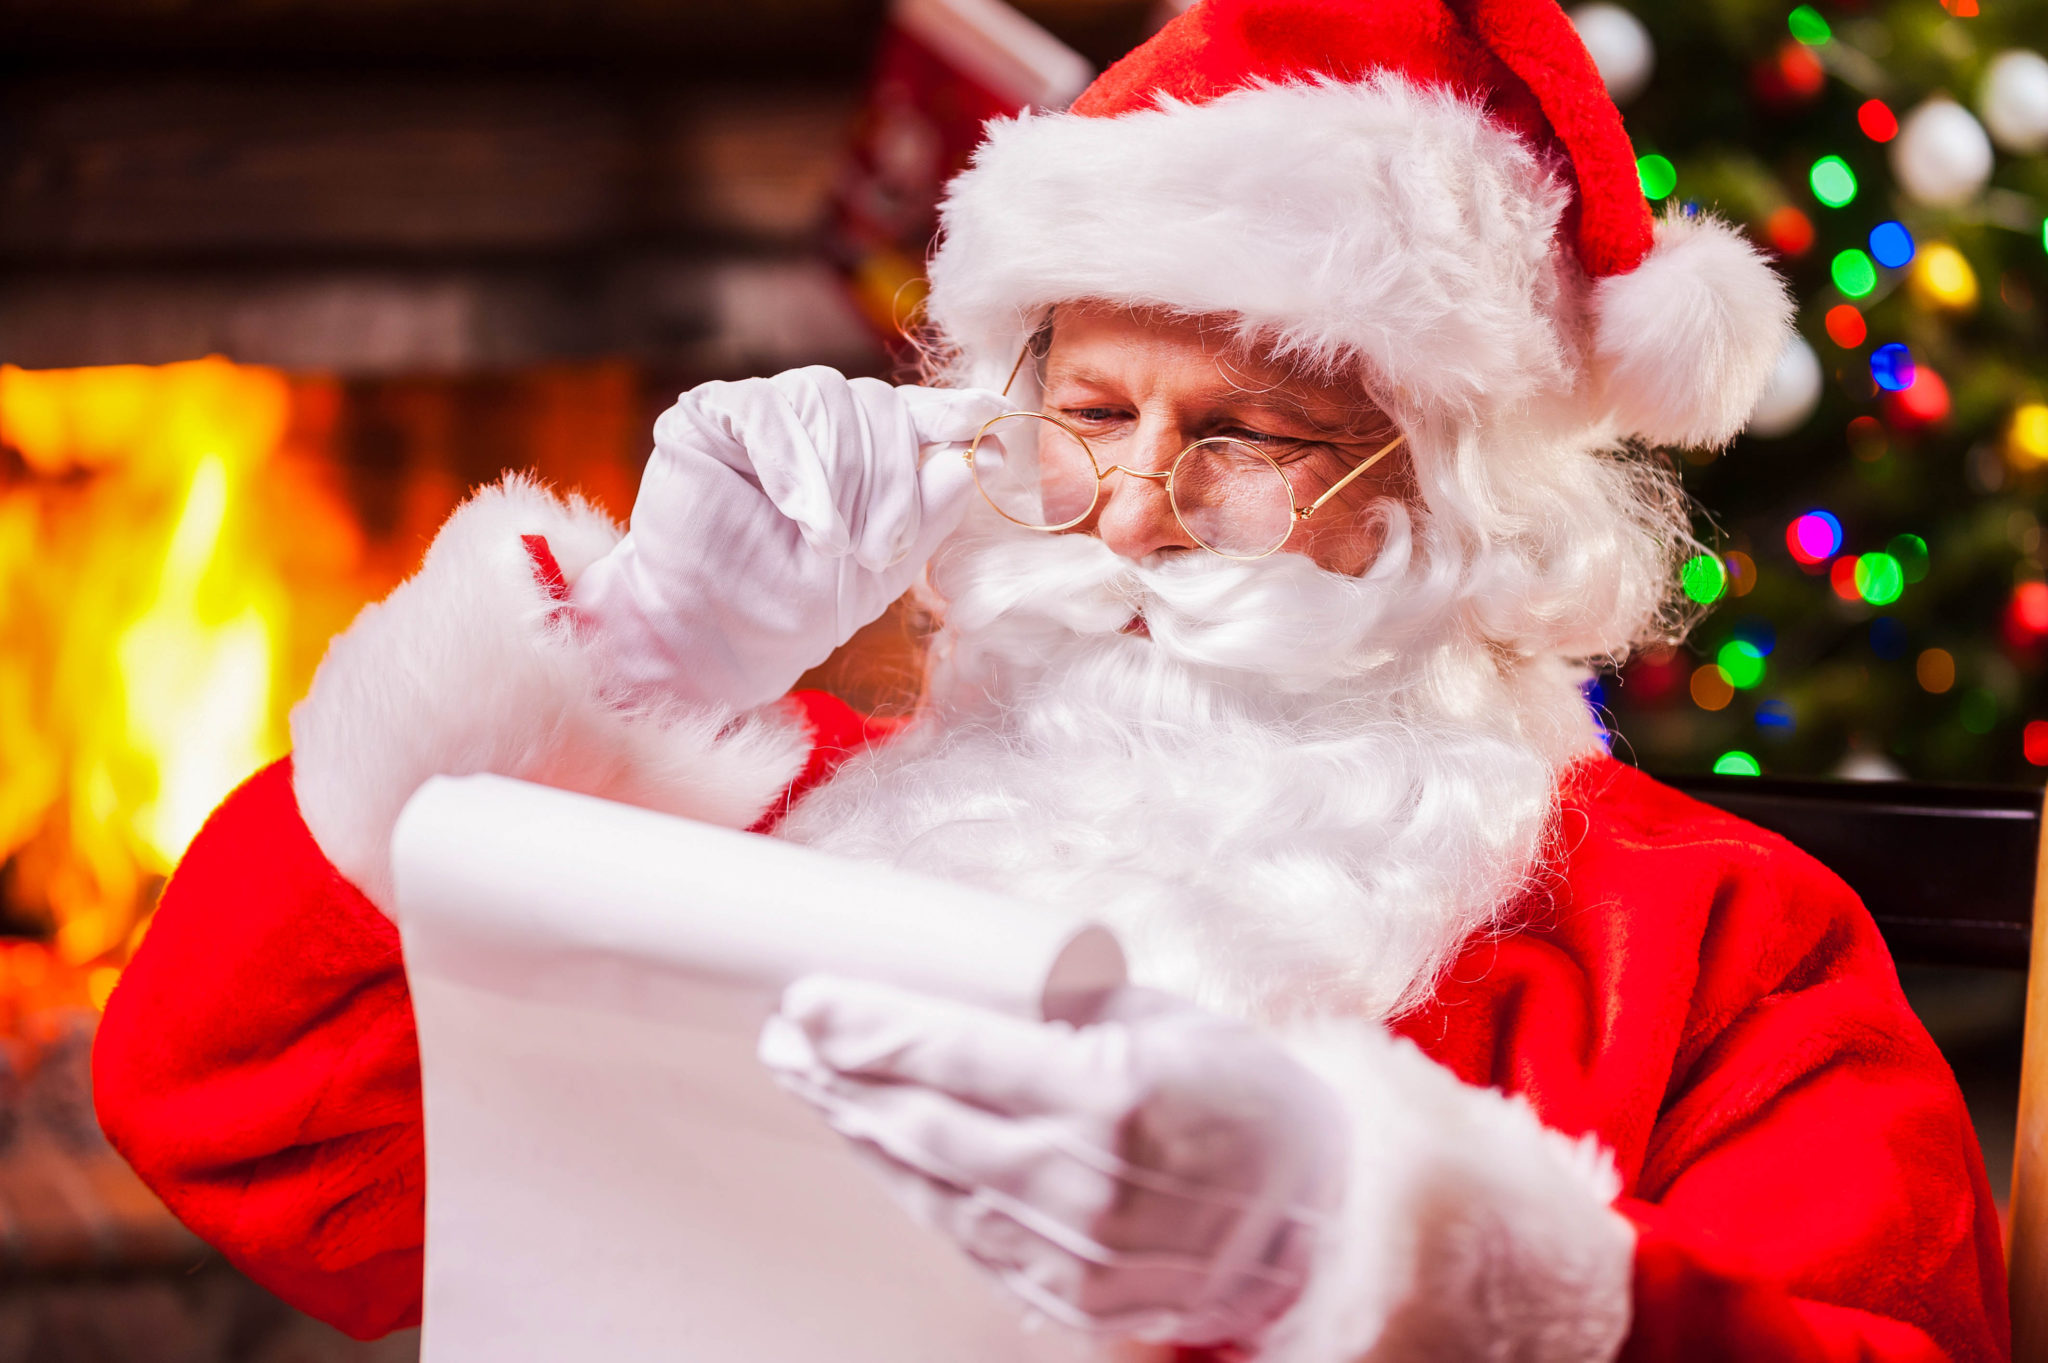 Santa's List Day - He's checking his list, he's checking it twice. He's gonna find out who's been naught or nice.